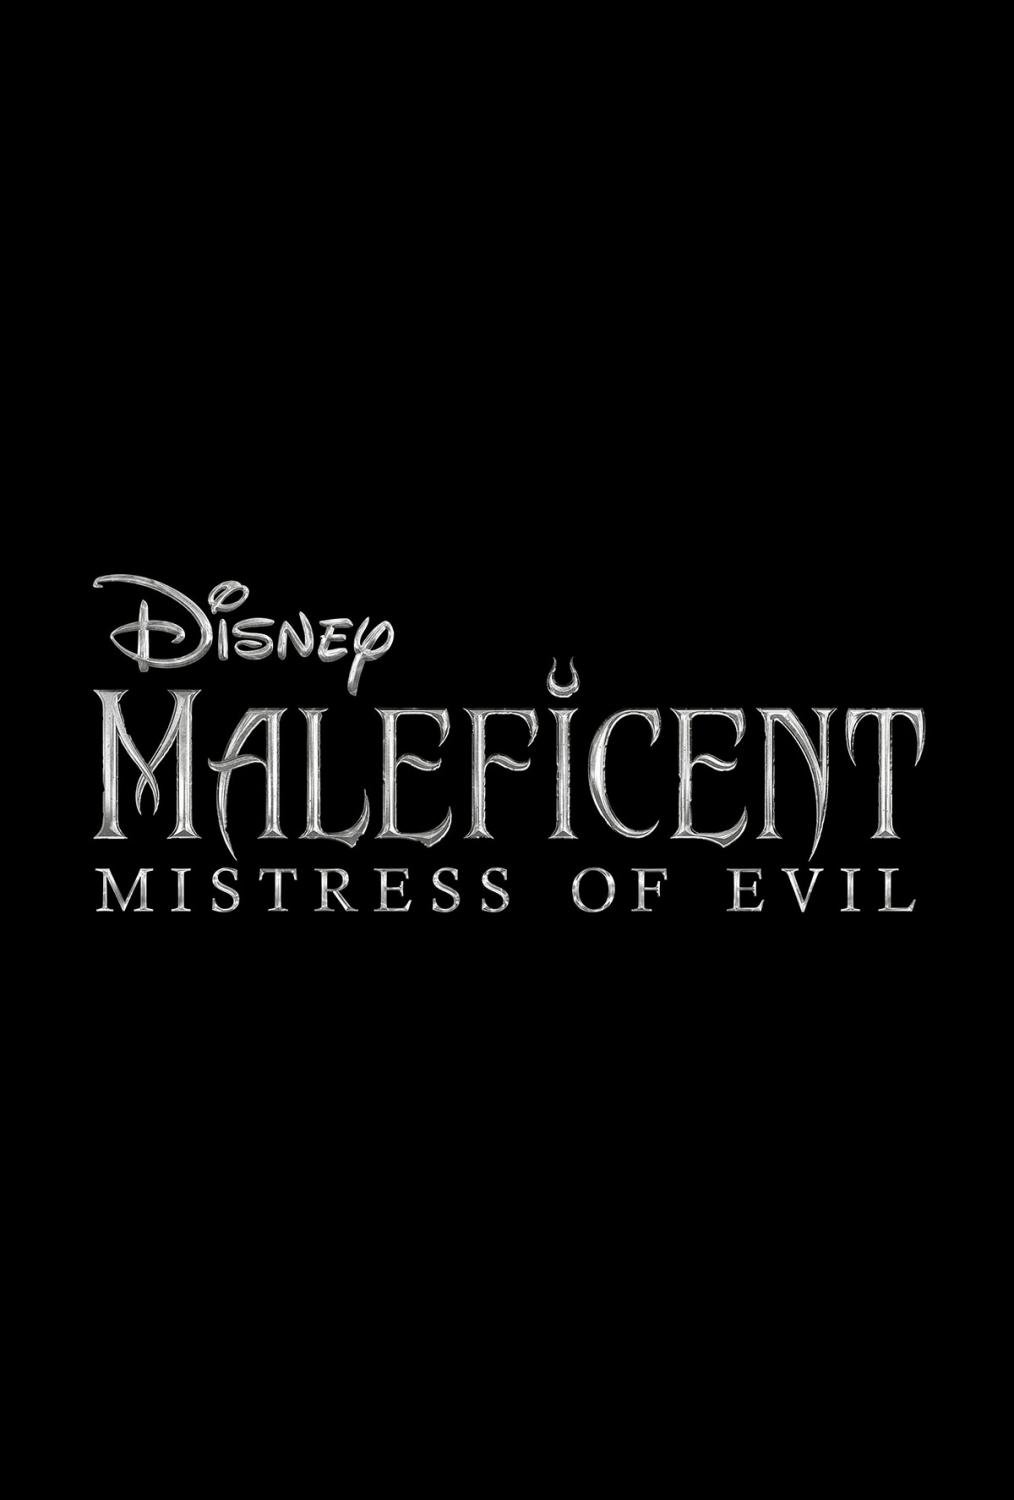 DISNEY'S MALEFICENT: MISTRESS OF EVIL – New Trailer Out Now